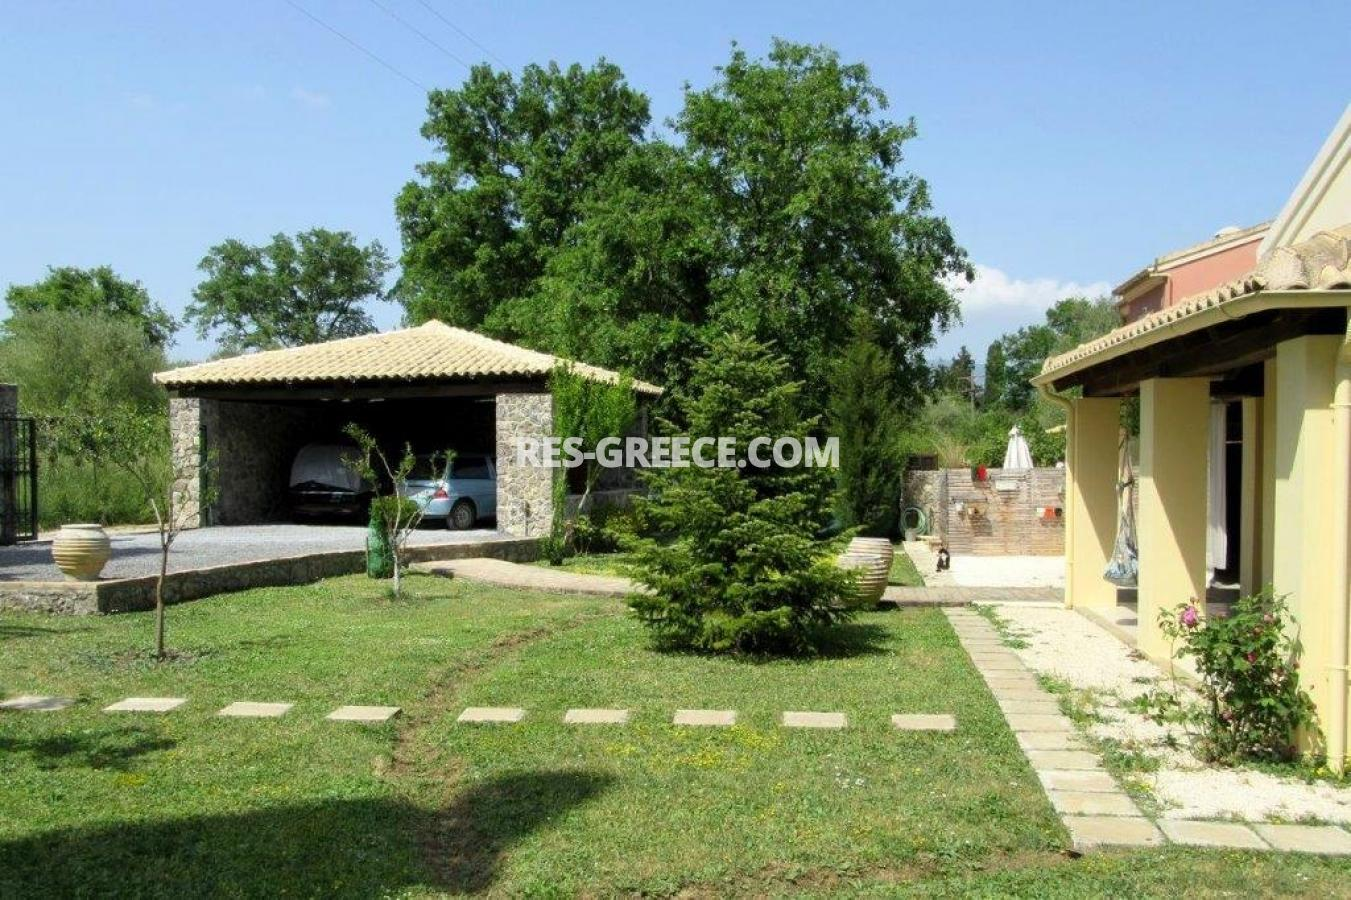 Poulades, Ionian Islands, Greece - Mediterranean bungalow for sale in Corfu - Photo 15